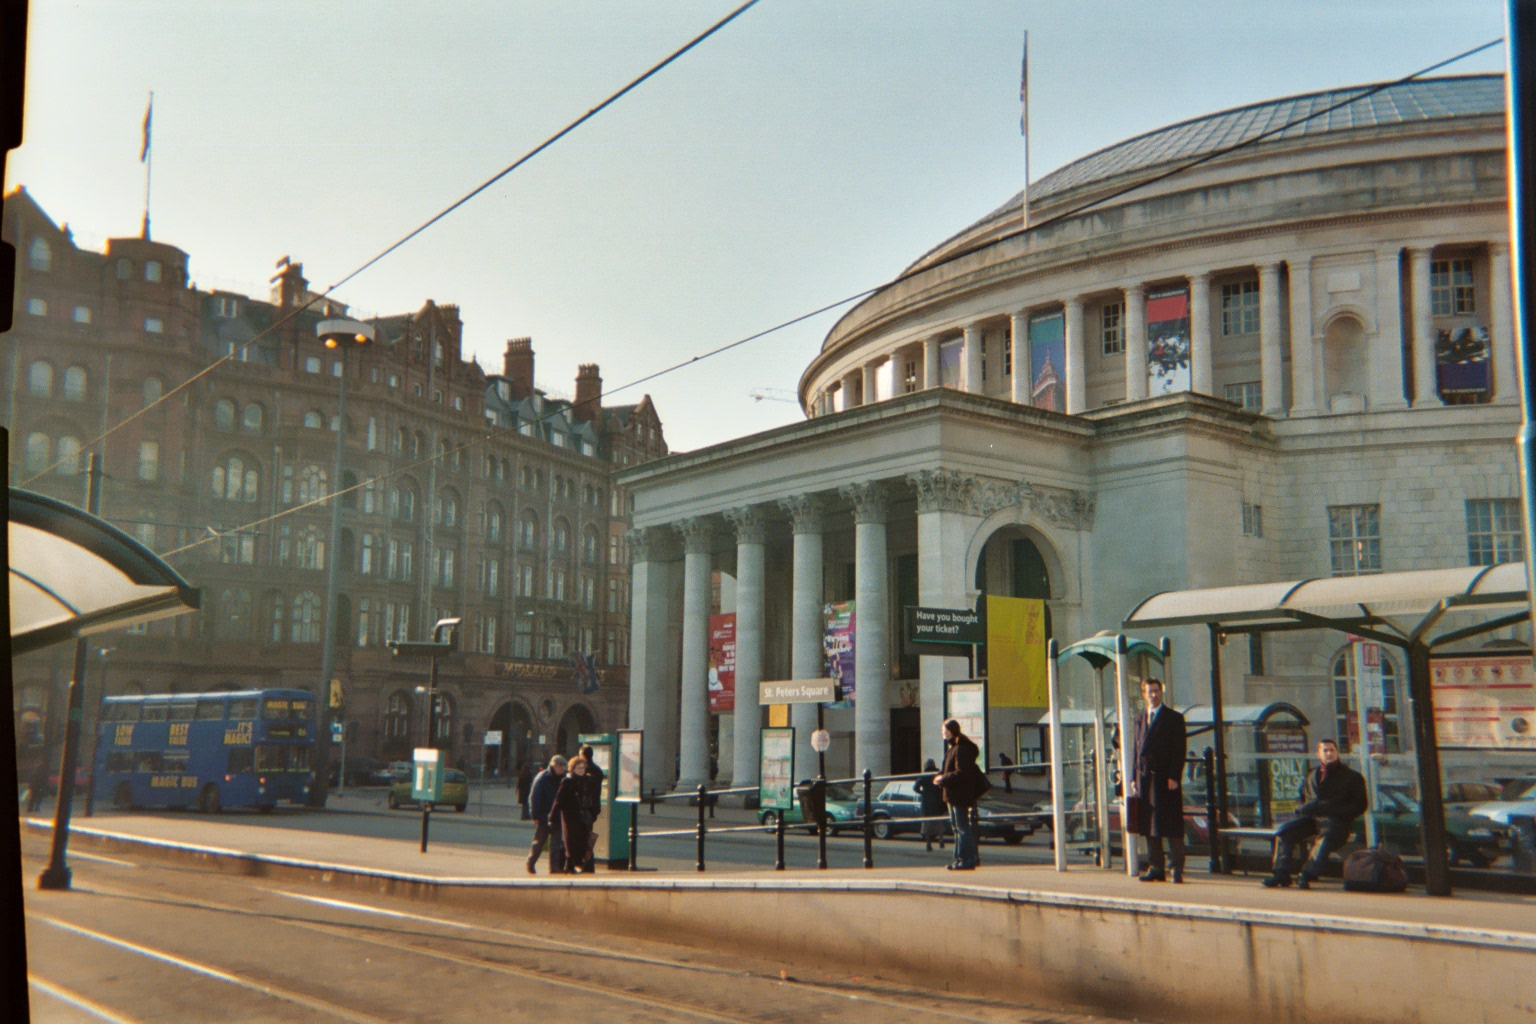 St Peters Square, Manchester